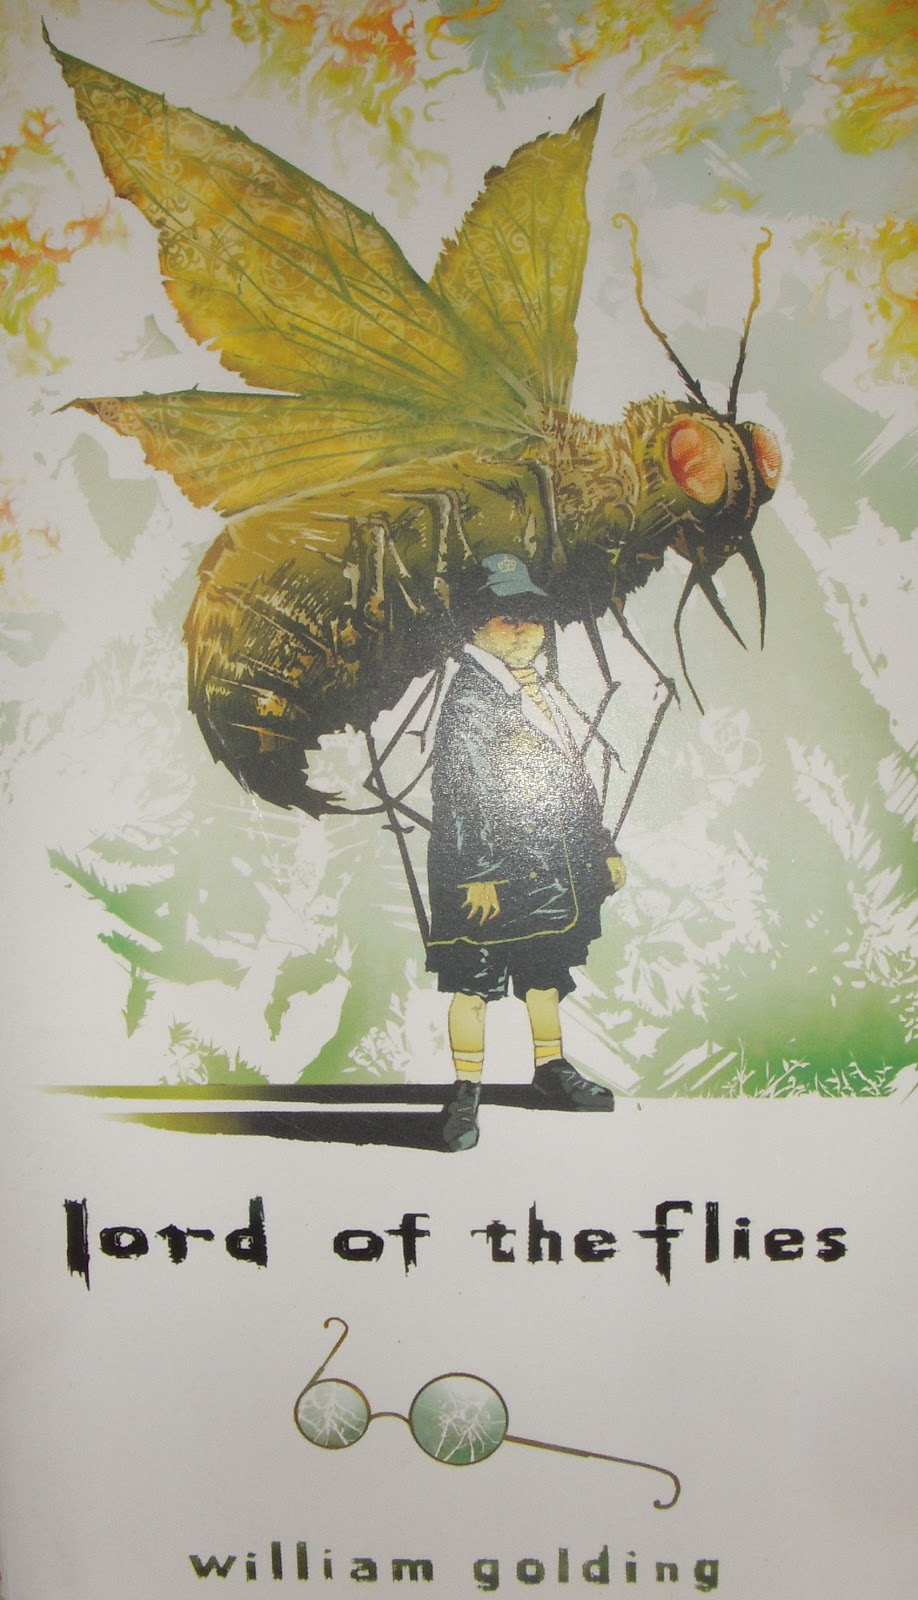 lord of the flies character study A list of all the characters in lord of the flies home → sparknotes → literature study guides → lord of the flies → character list lord of take a.